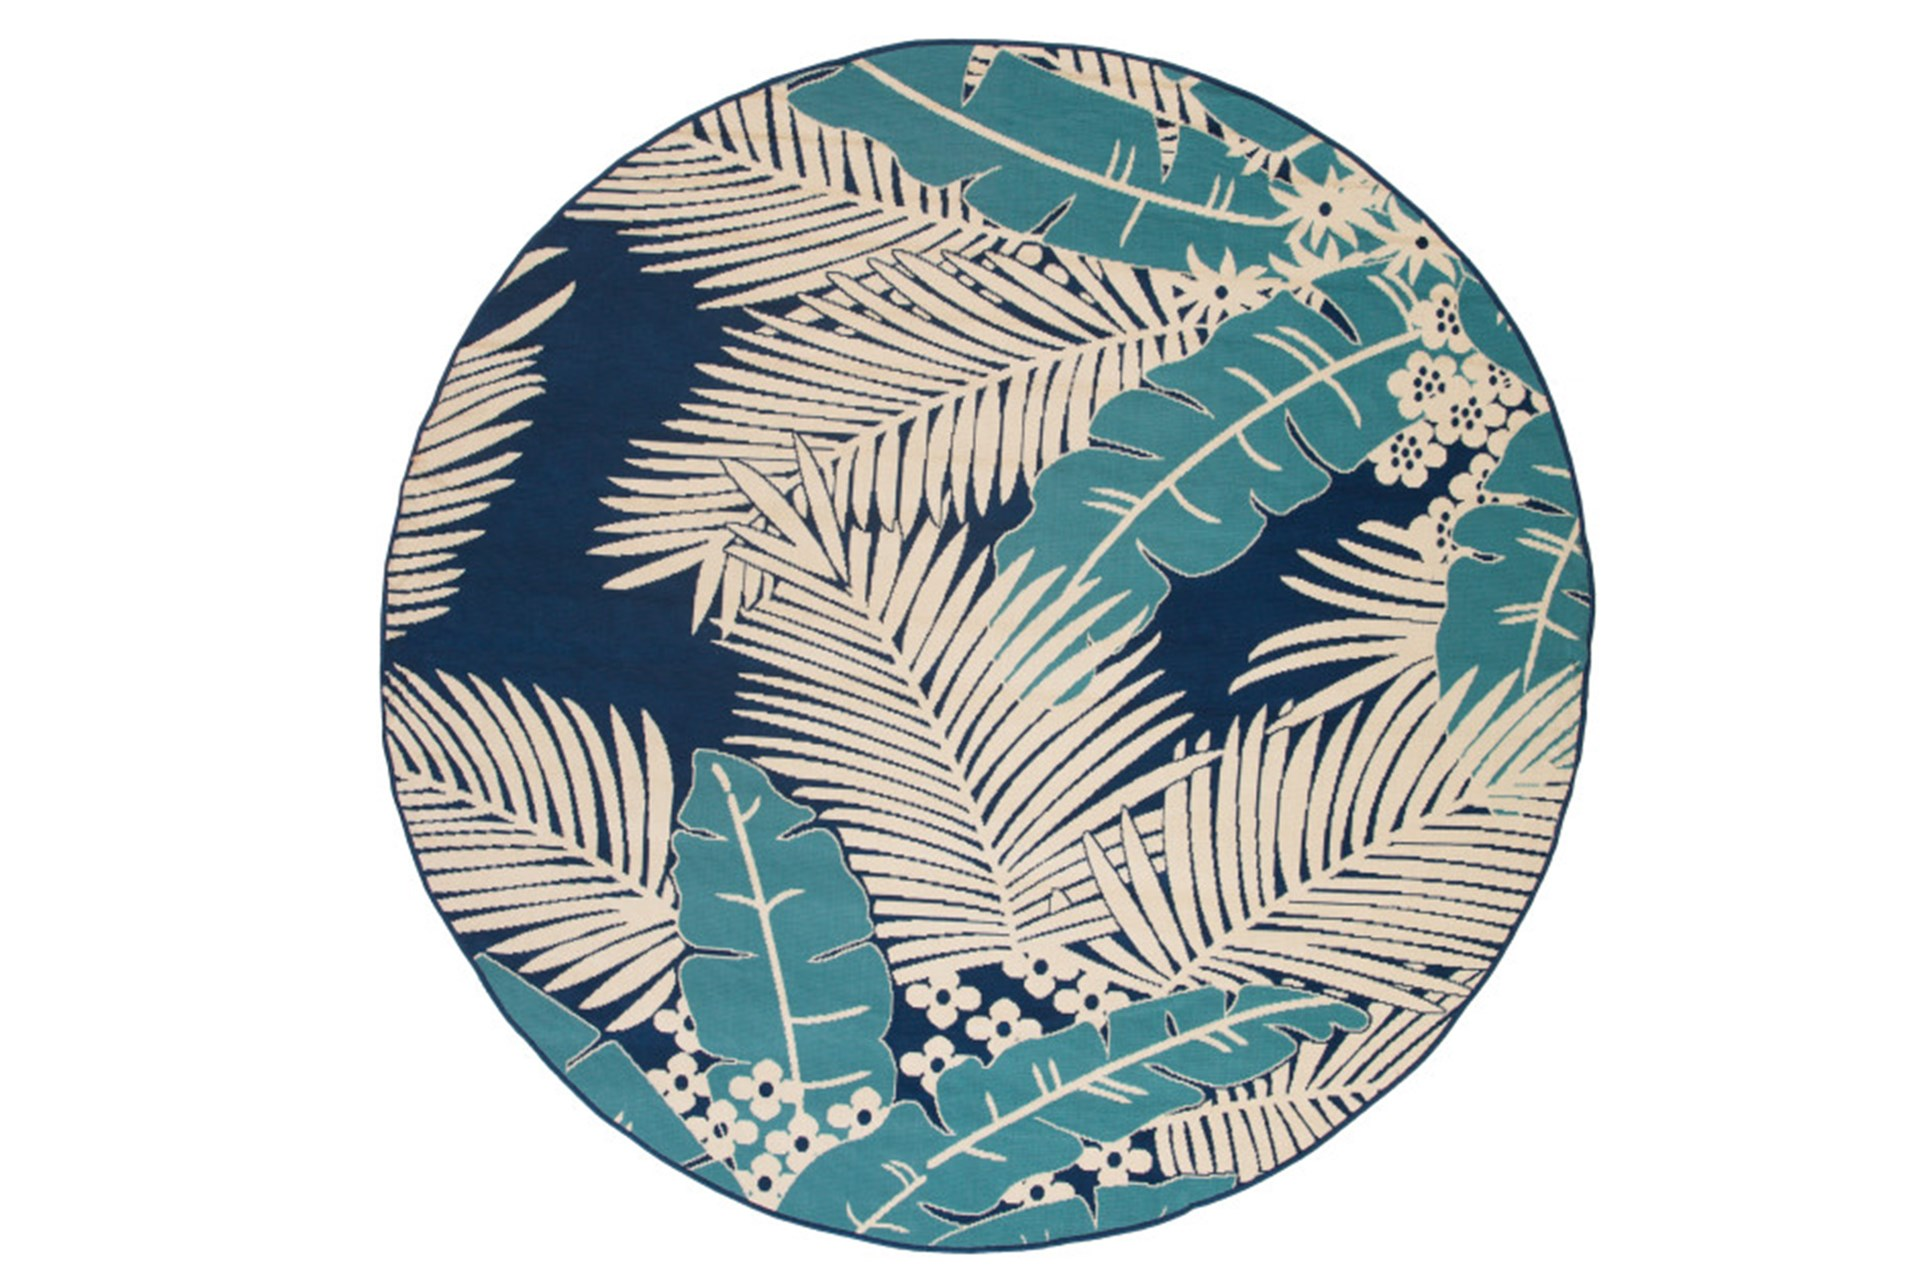 round outdoor rugs. 94 Inch Round Outdoor Rug-Palm Beach Aqua/Navy (Qty: 1) Has Been Successfully Added To Your Cart. Rugs